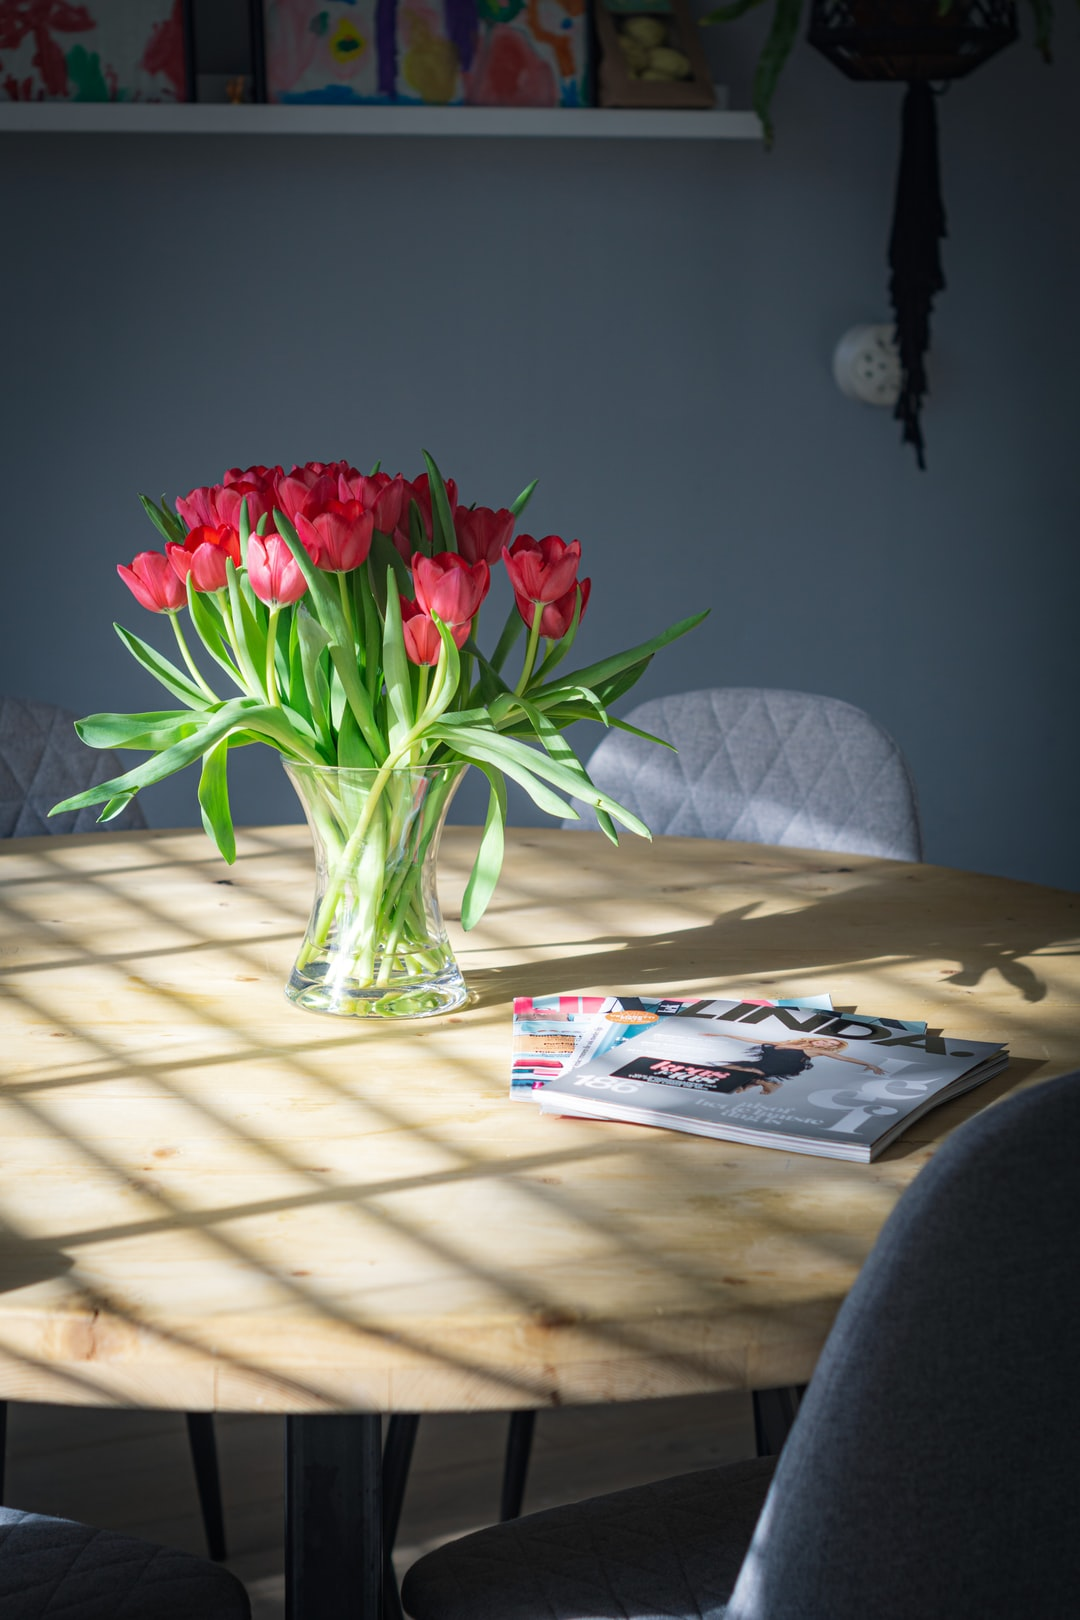 Tulps and some magazines on the dining table.